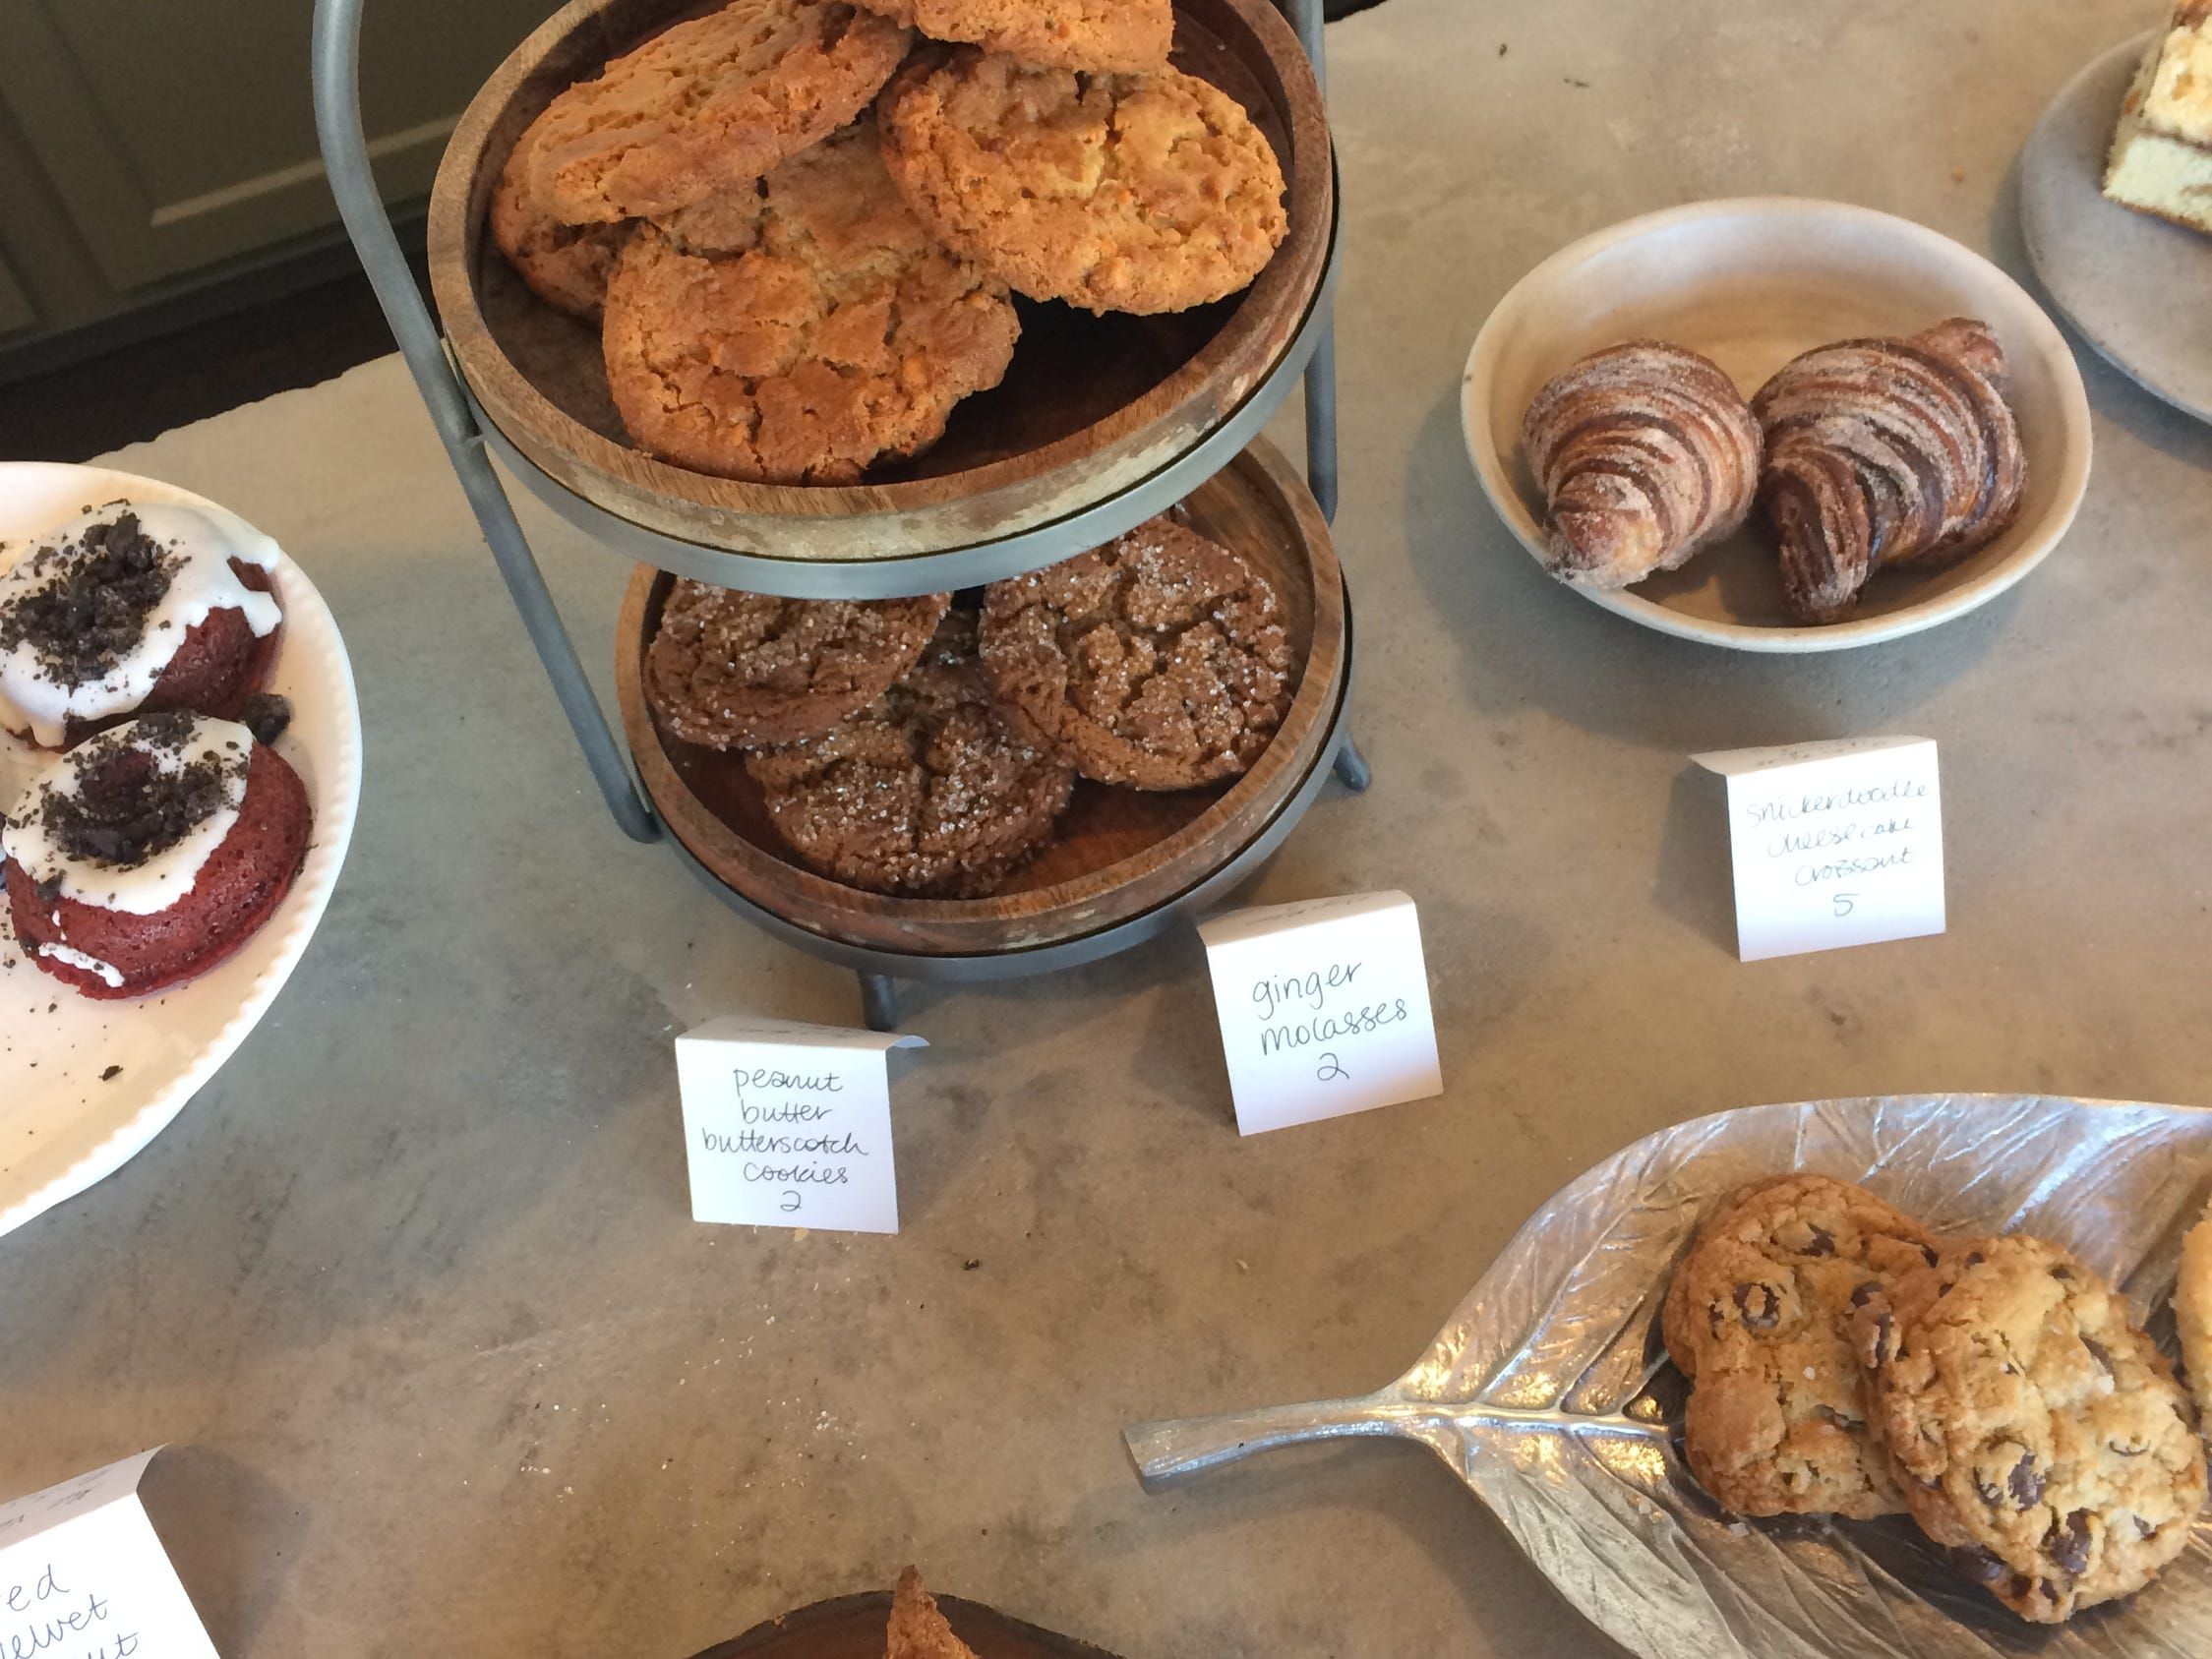 A selection of baked goods at Slow Hand Coffee + Bakeshop in East Nashville.